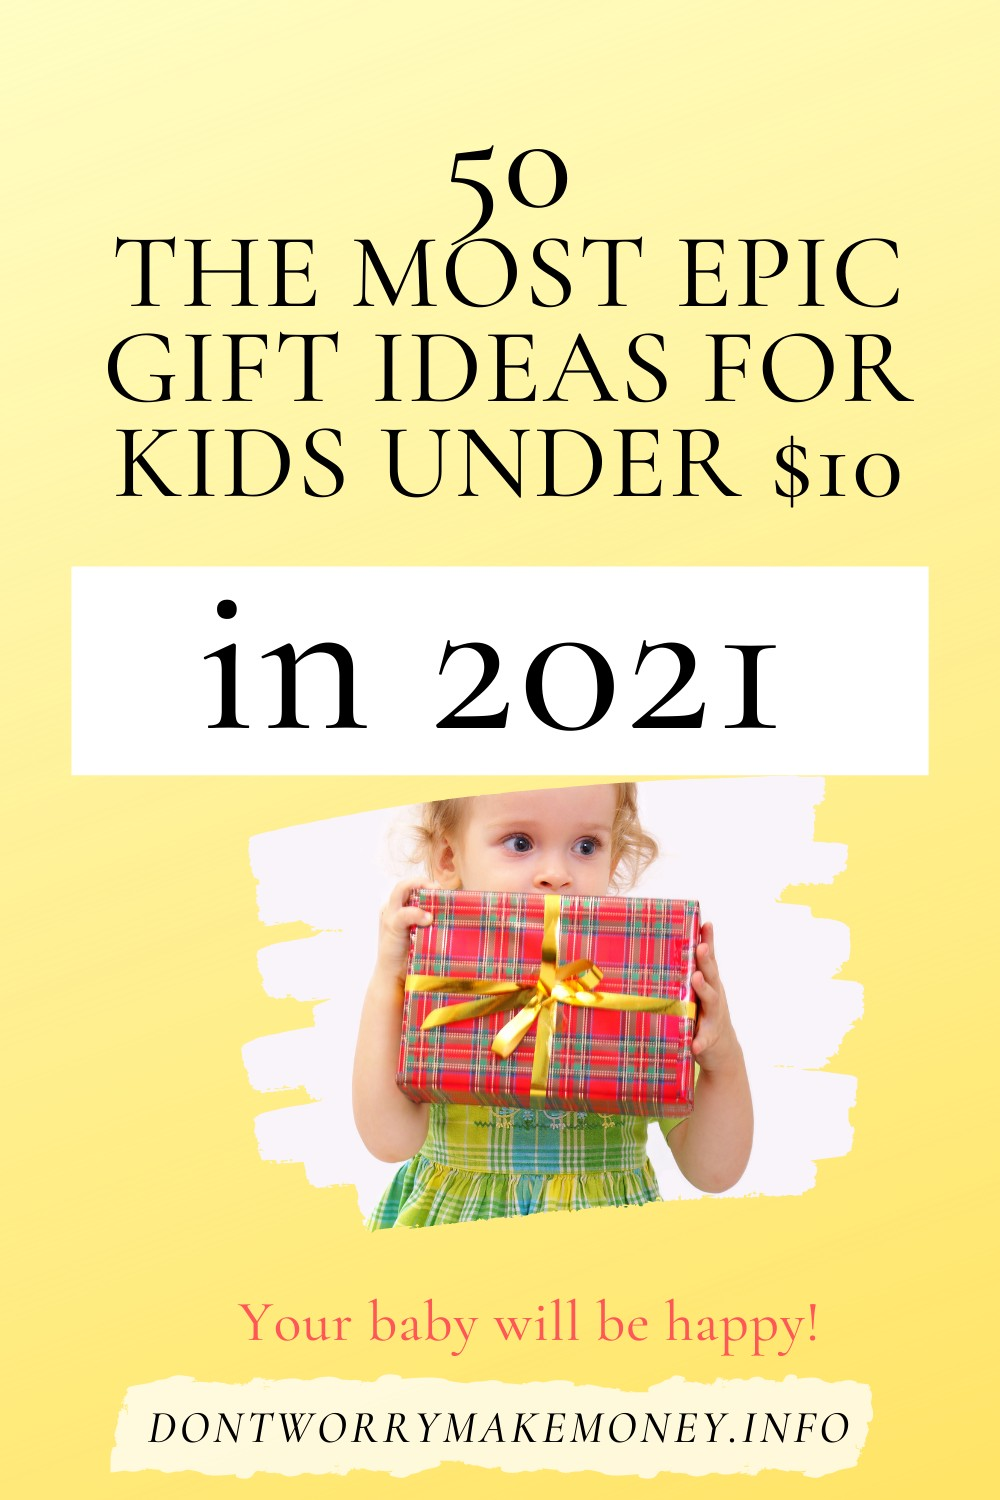 50 THE MOST EPIC $10 GIFT IDEAS FOR KIDS